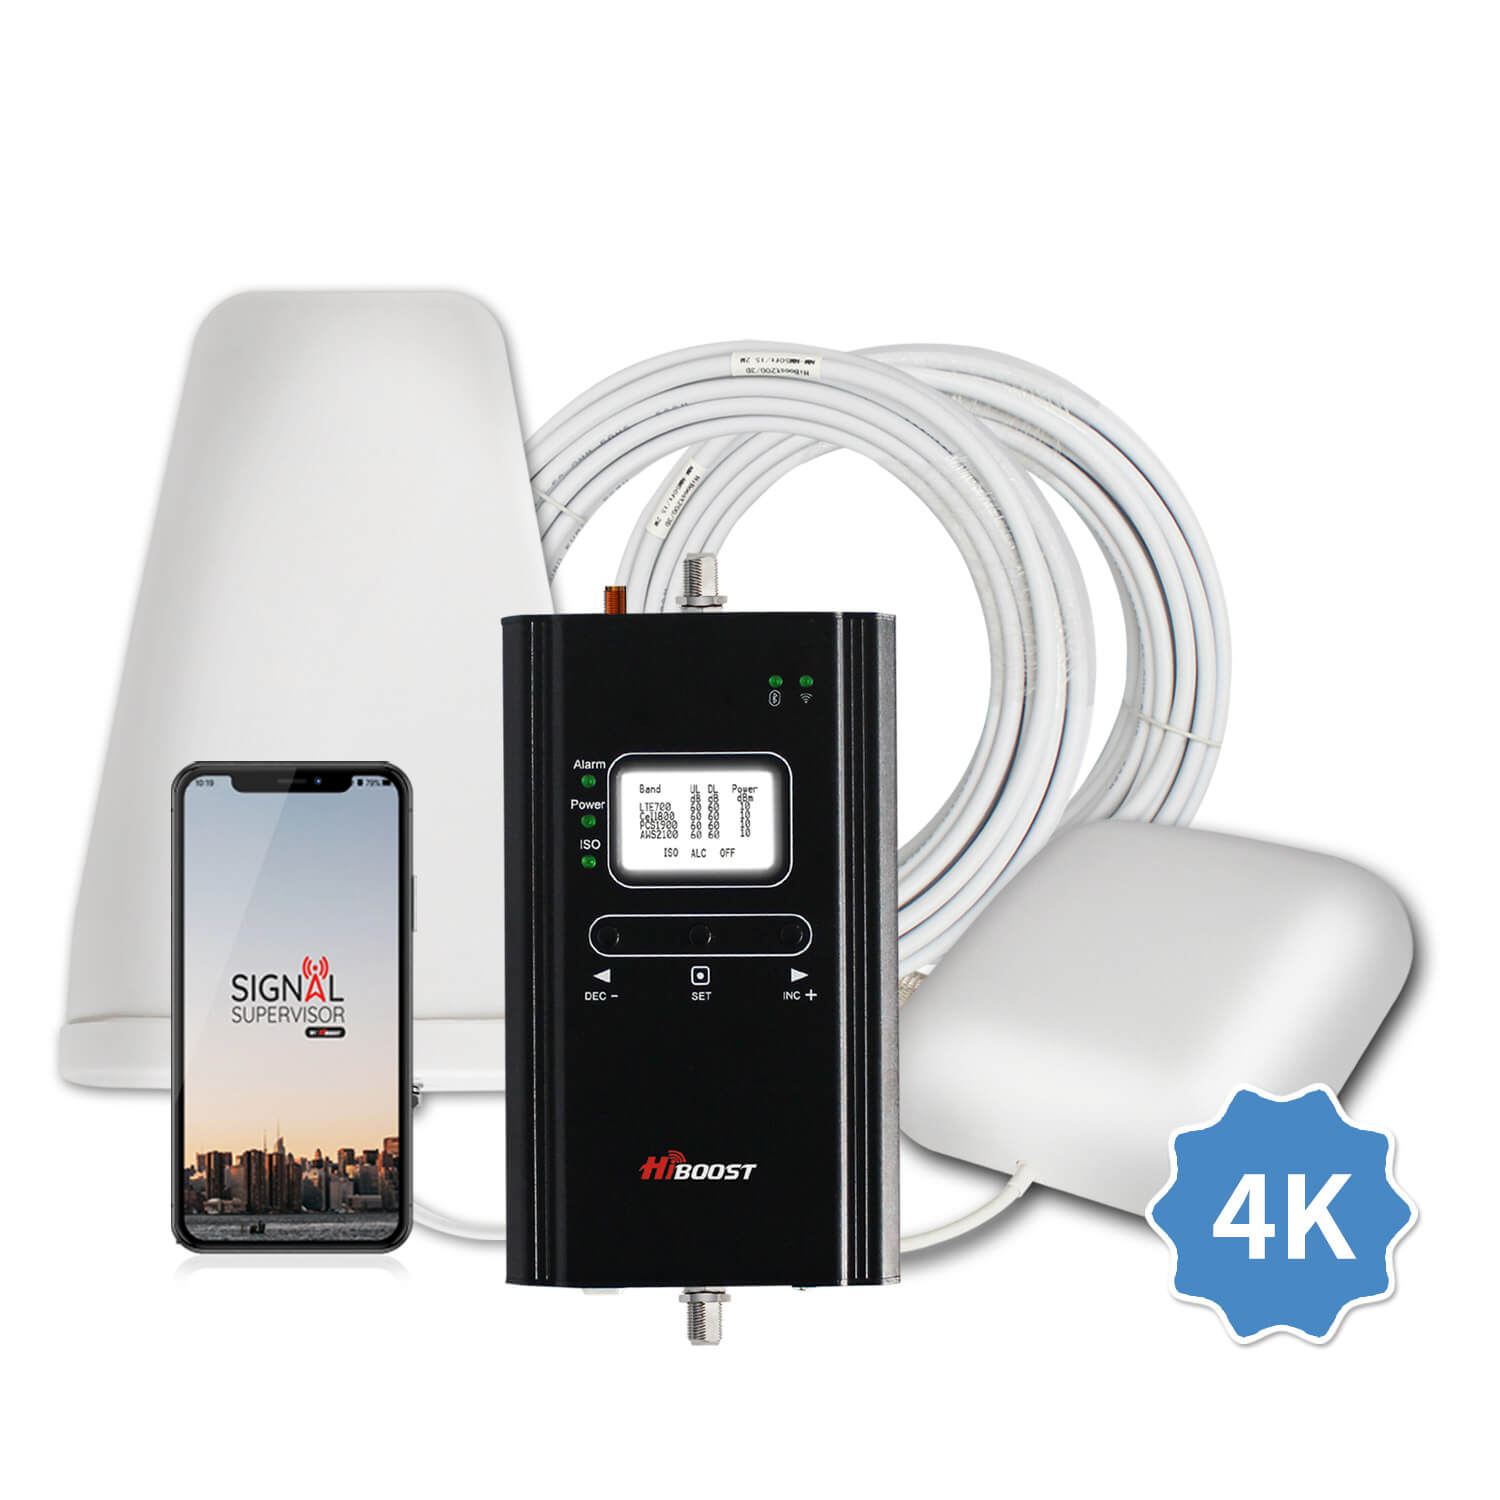 Hiboost-4K-Smart-Link-Cell-Phone-Signal-Booster